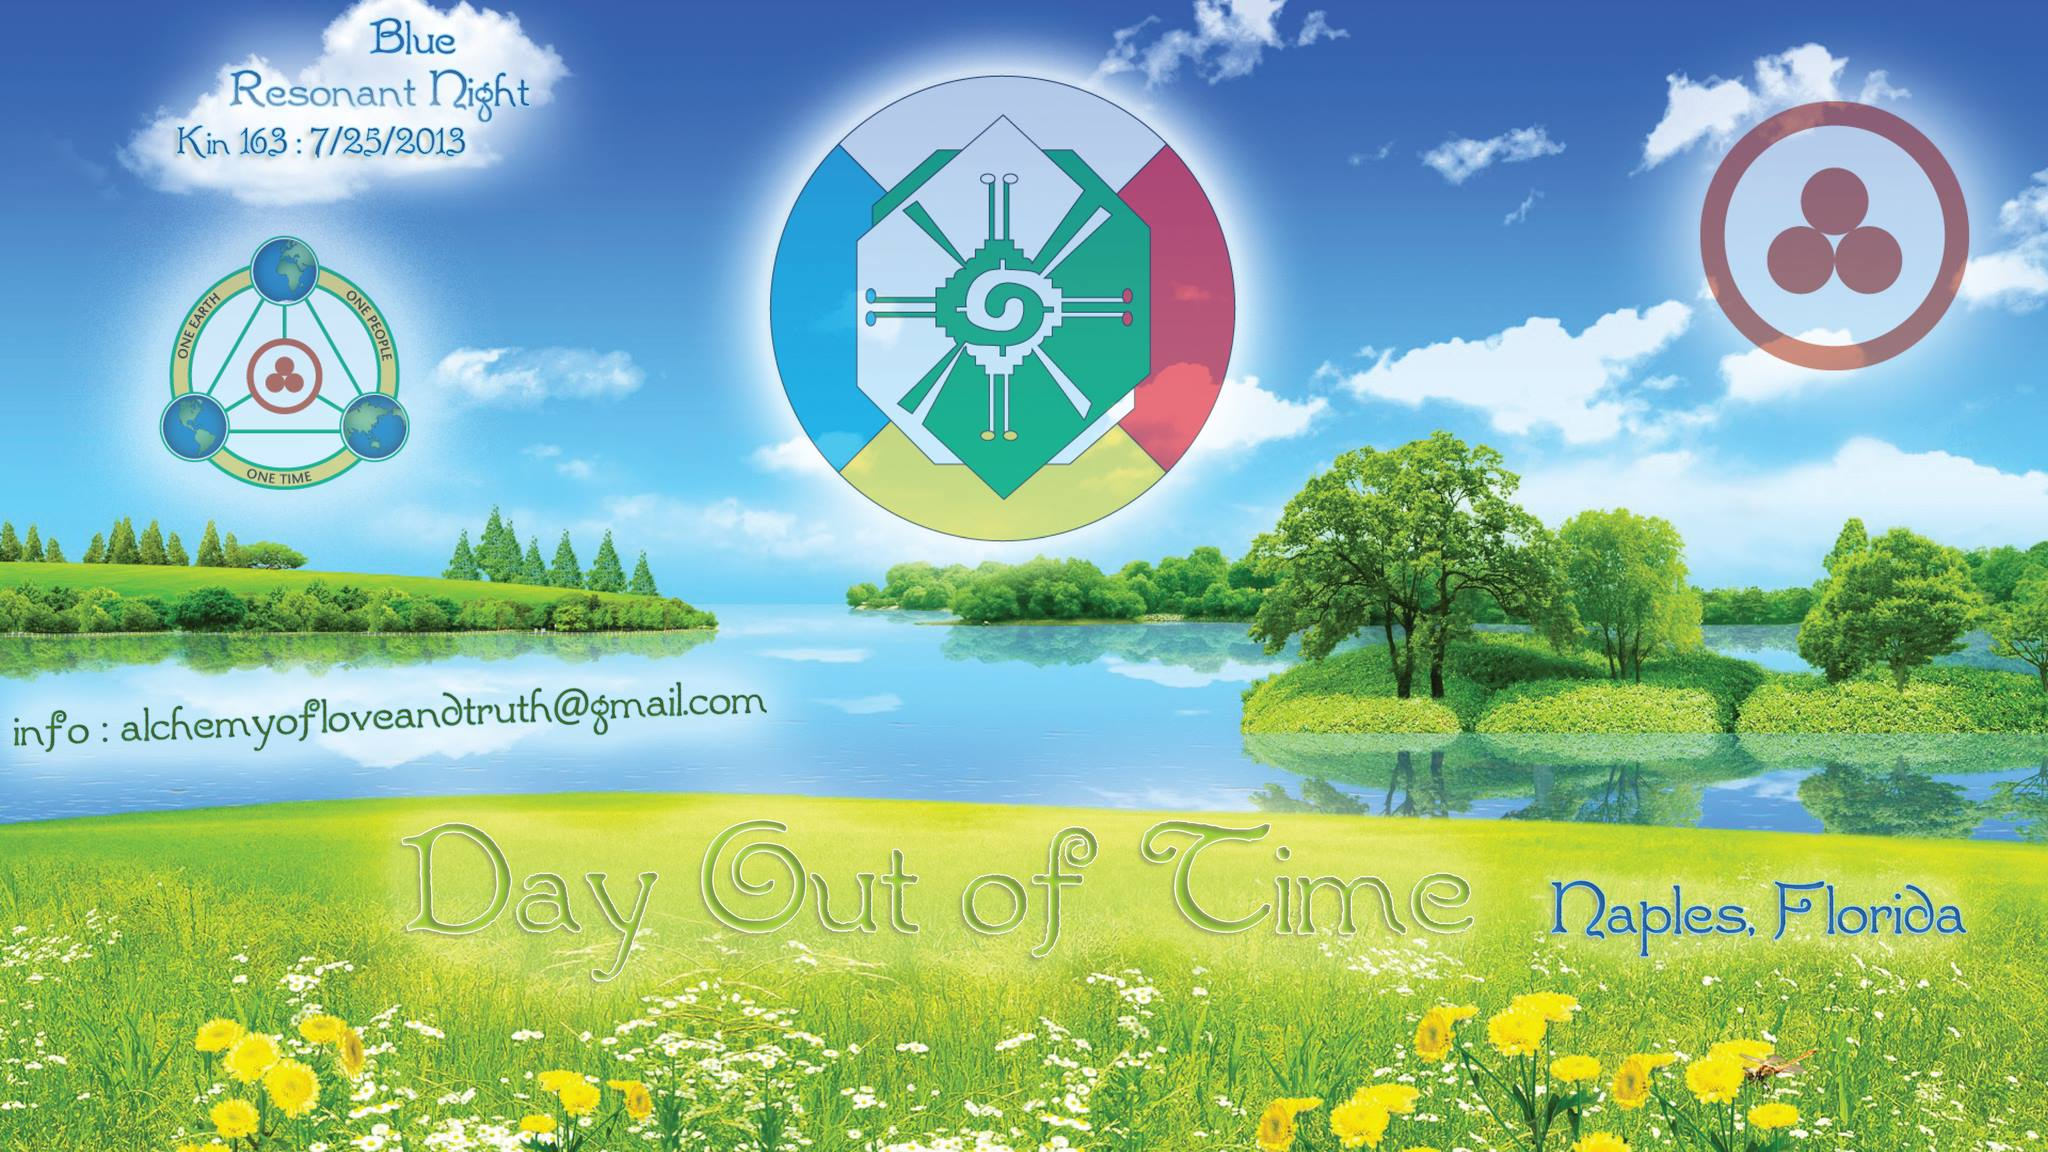 [Day out of Time 2013 event flier - USA, Naples, Florida]